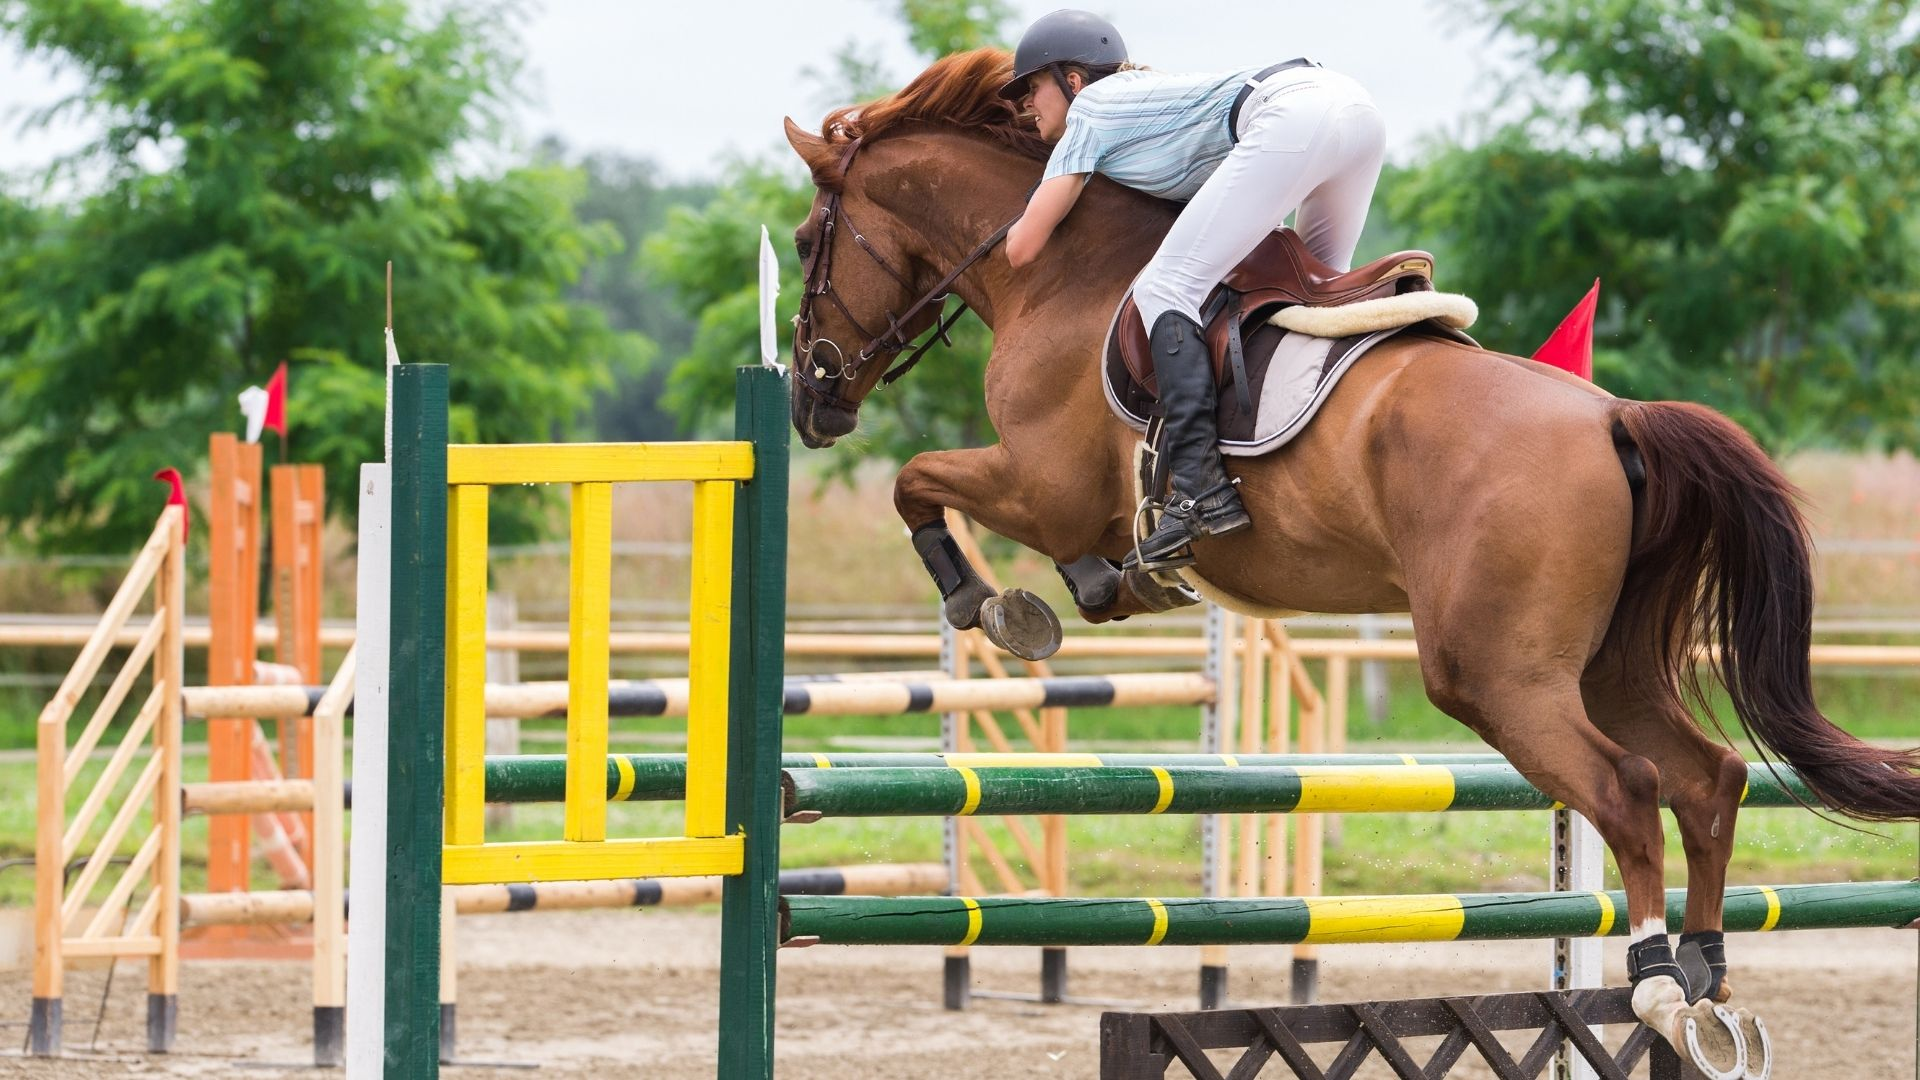 Picture of a horse jumping a yellow and green obstacle.